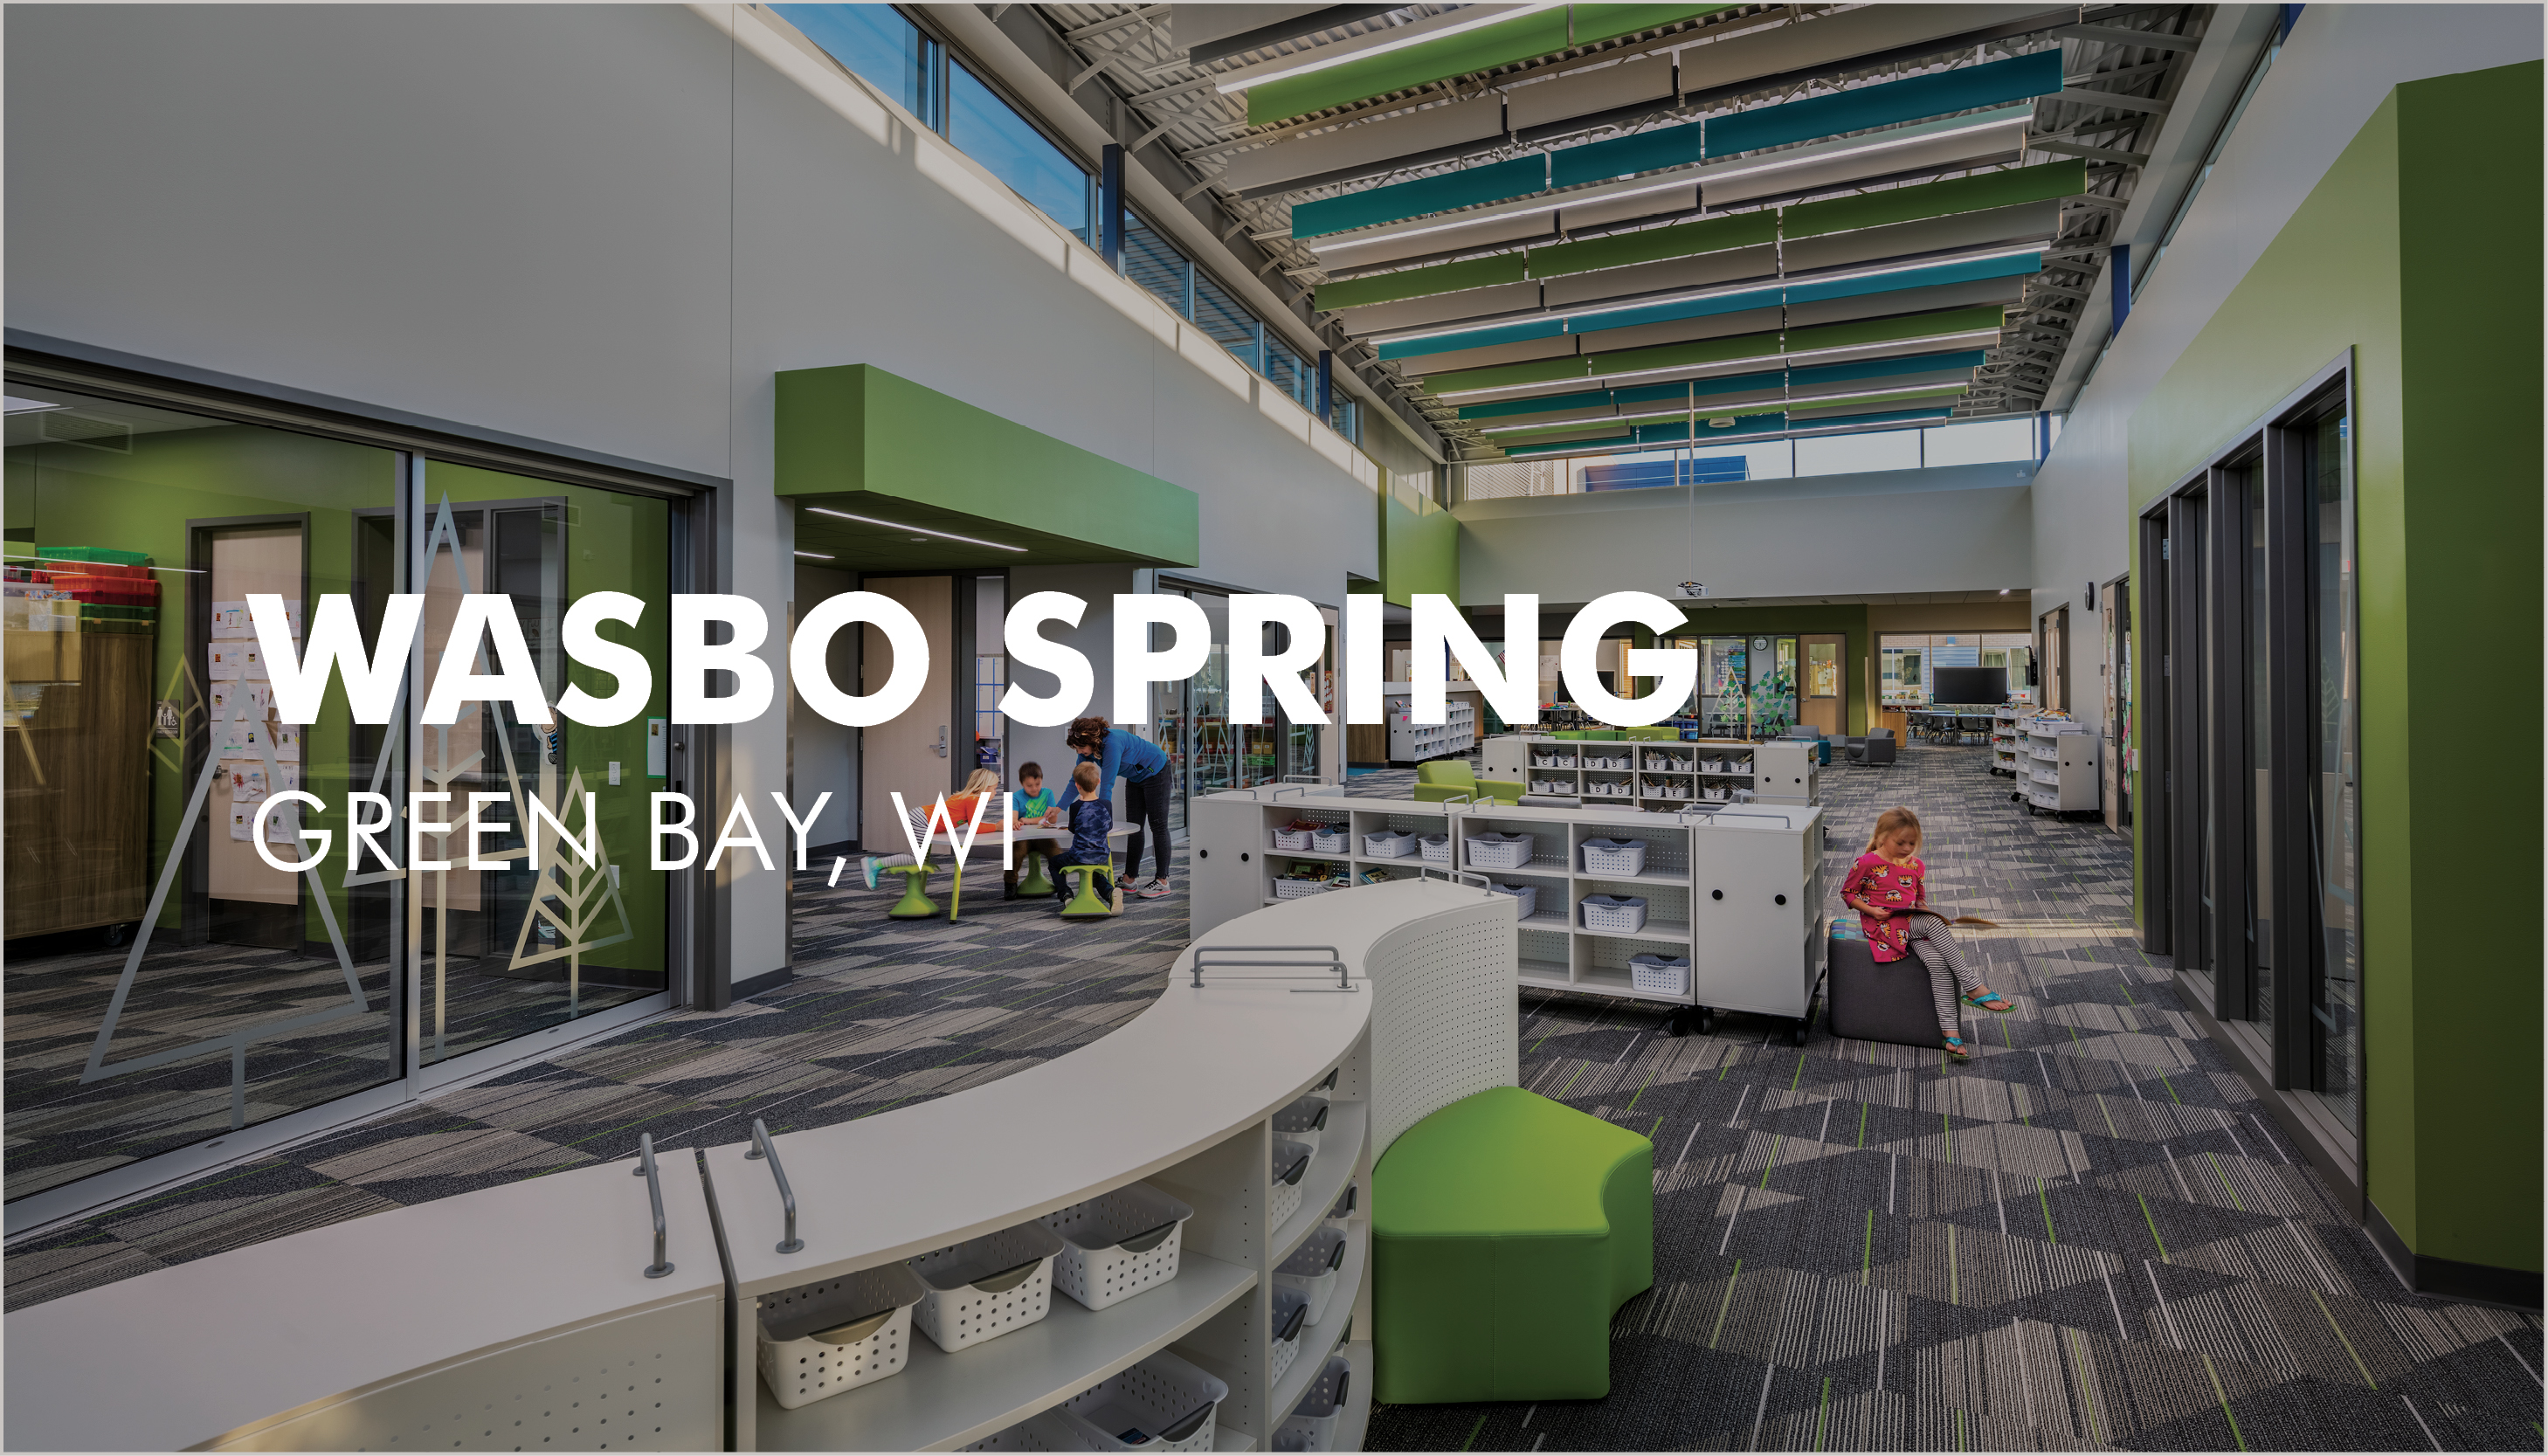 Wisconsin Association of School Business Officials (WASBO) Spring Conference 2019 Image